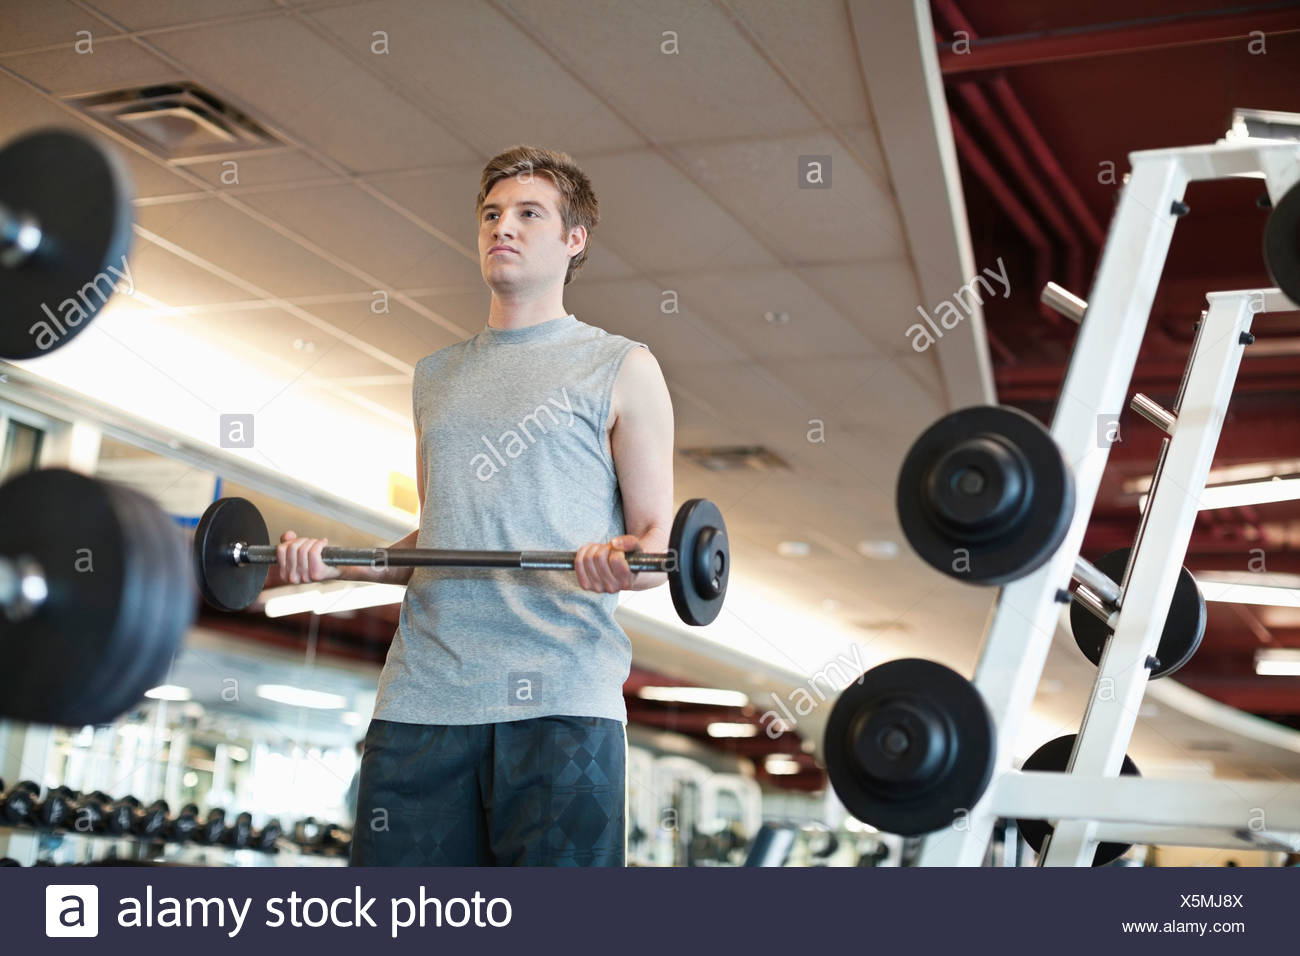 Low angle view of man lifting weights in fitness center - Stock Image